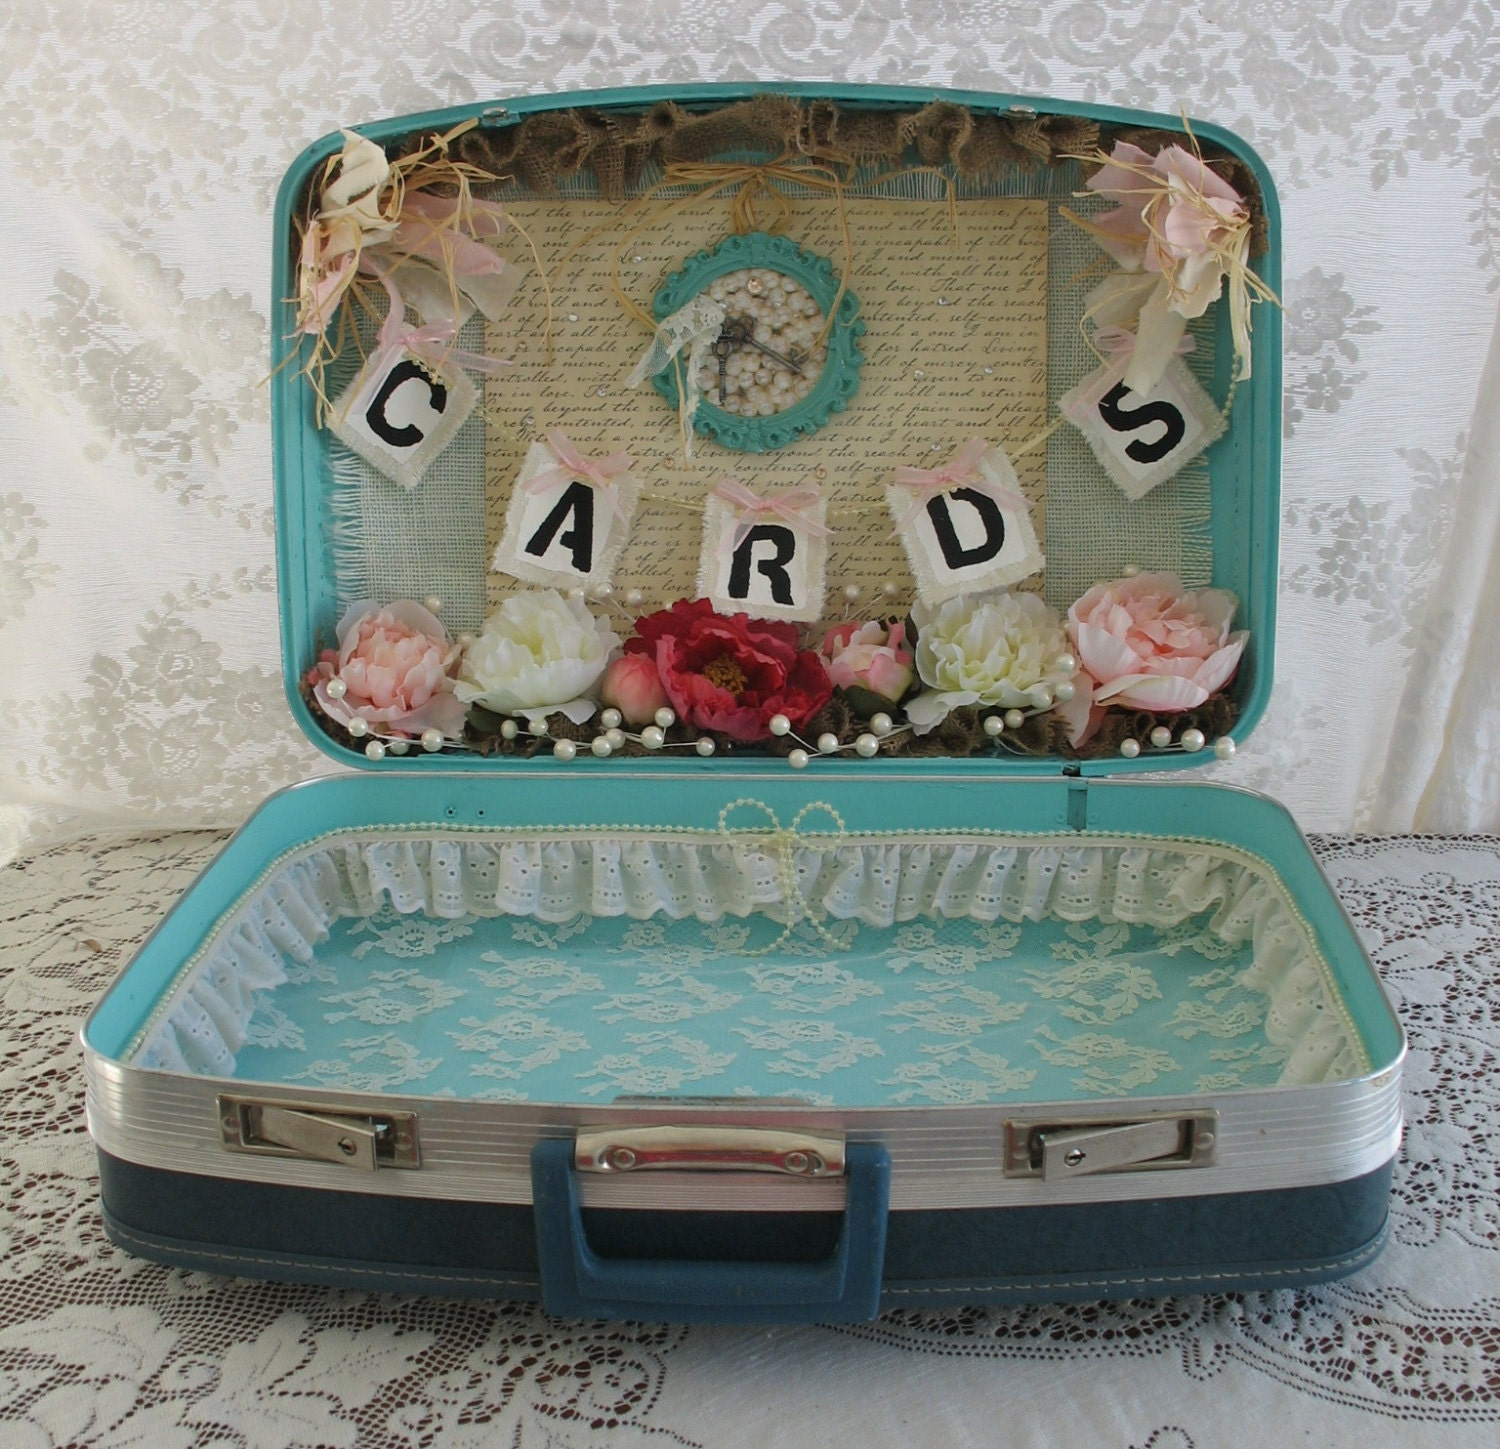 Vintage Wedding Gift Card Holder : Vintage Suitcase Wedding Card Holder For Country Chic Shabby